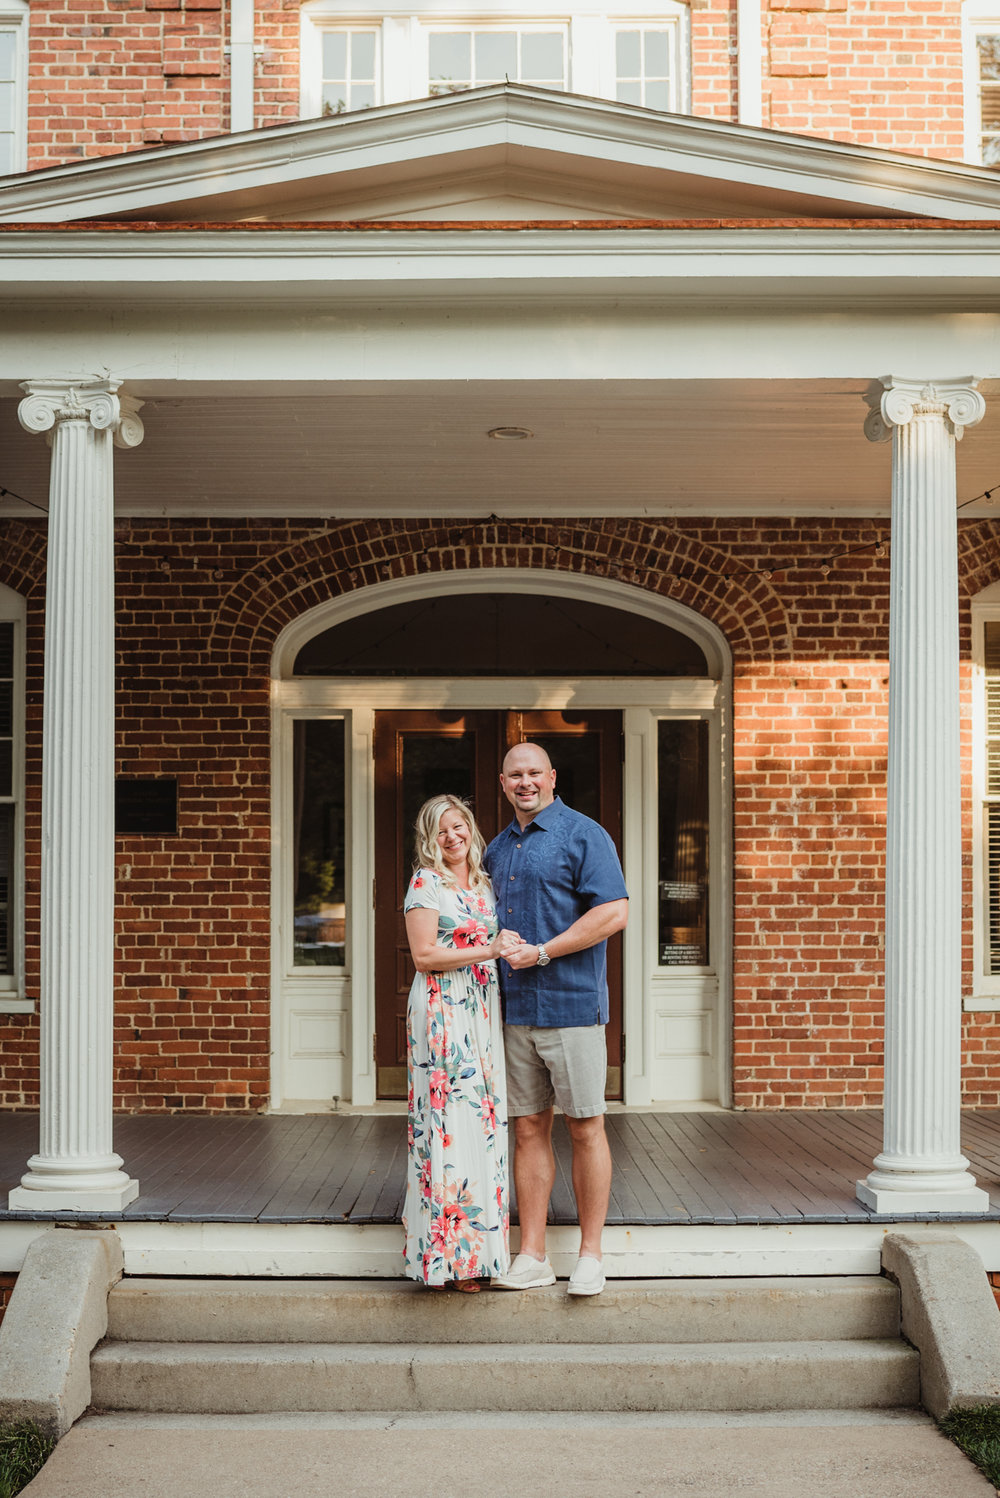 The couple stand together on the steps of the old building during their engagement session with Rose Trail Images at Fred Fletcher Park in Raleigh, North Carolina.